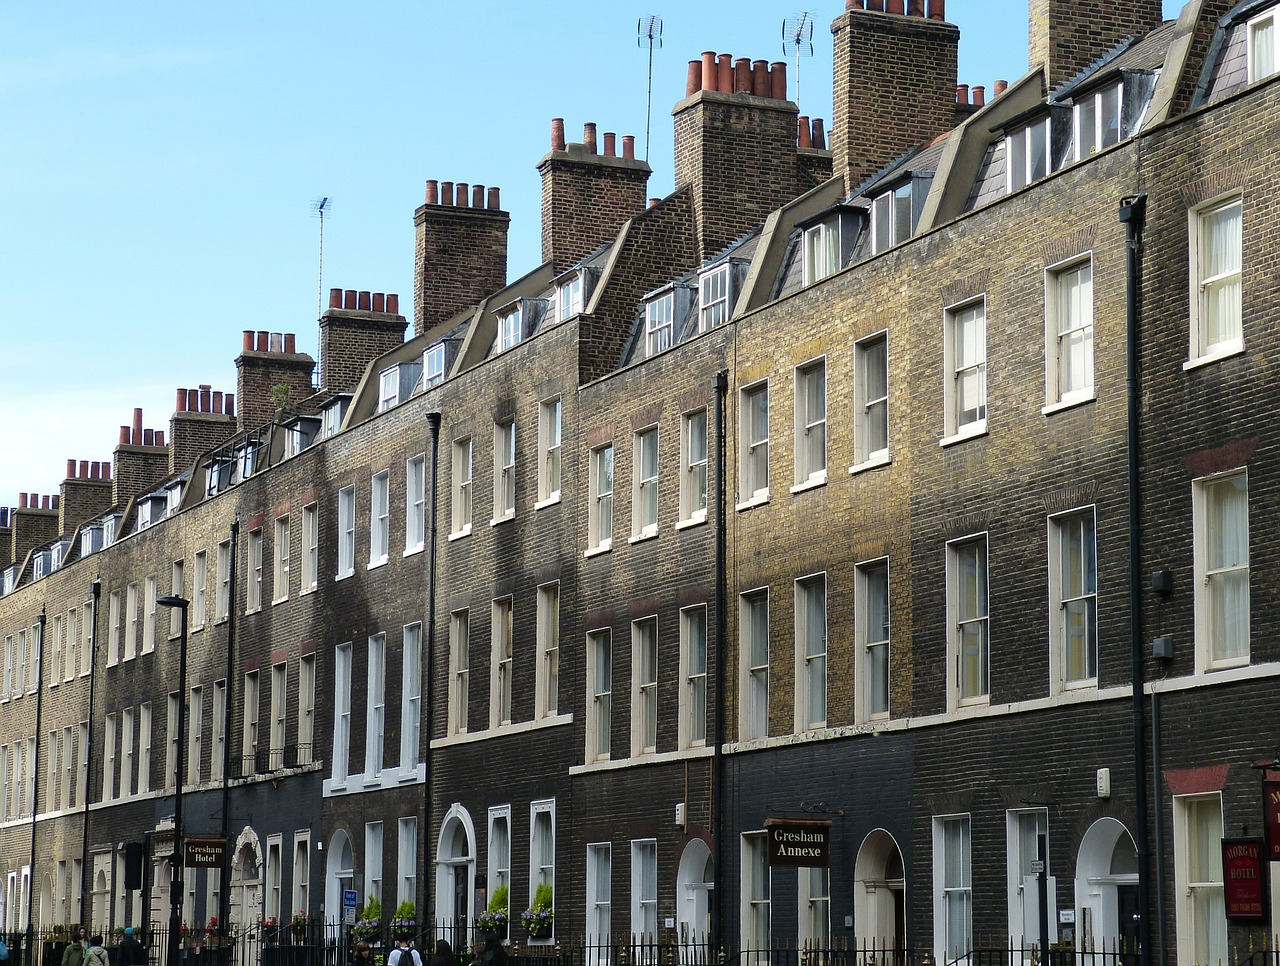 Flipping Houses in London: Keep an Eye on those New Developments